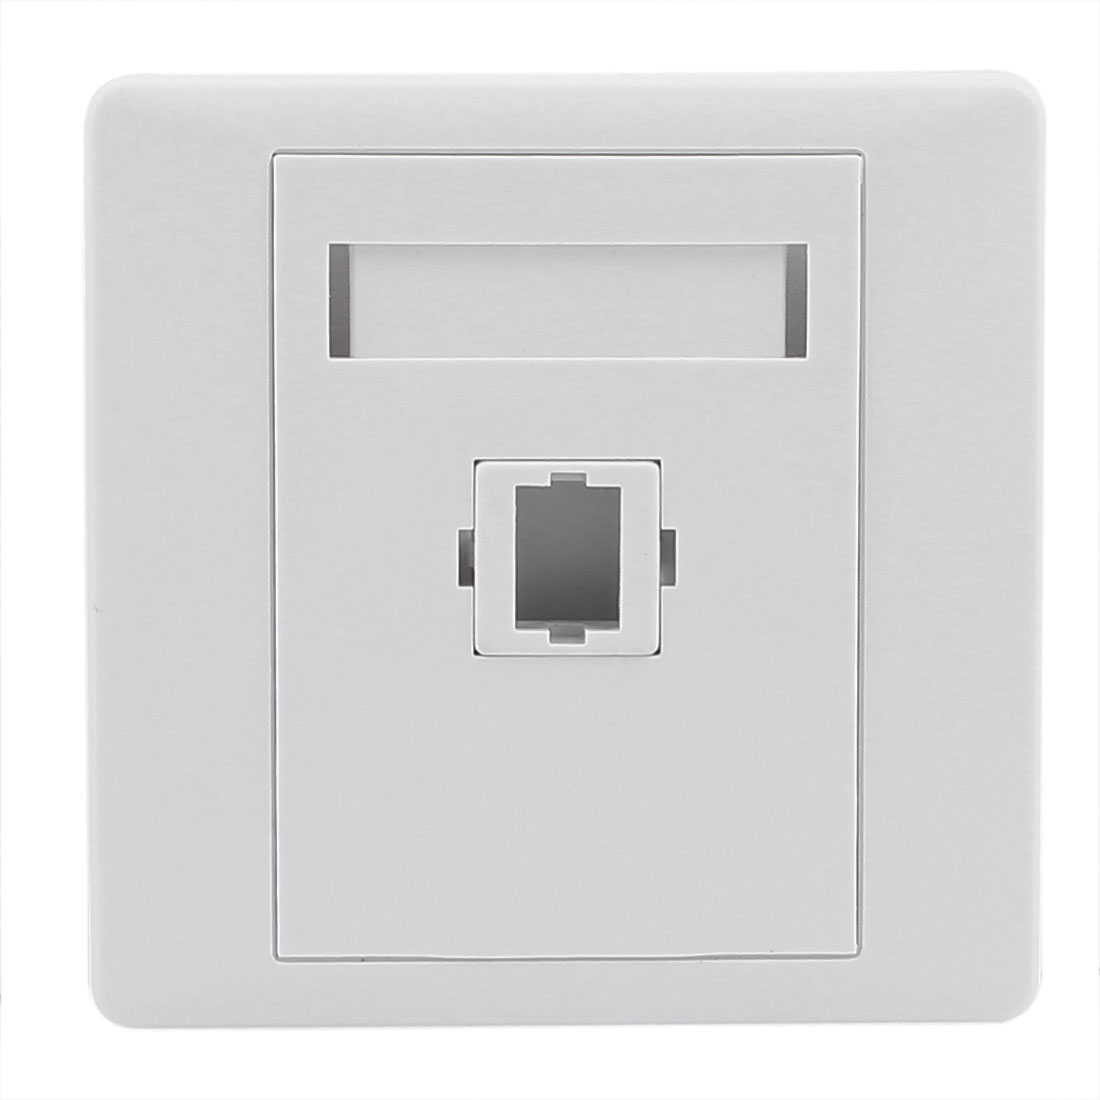 SC Fiber Optical Cord Connector Mount Sockets Wall Plate Panel